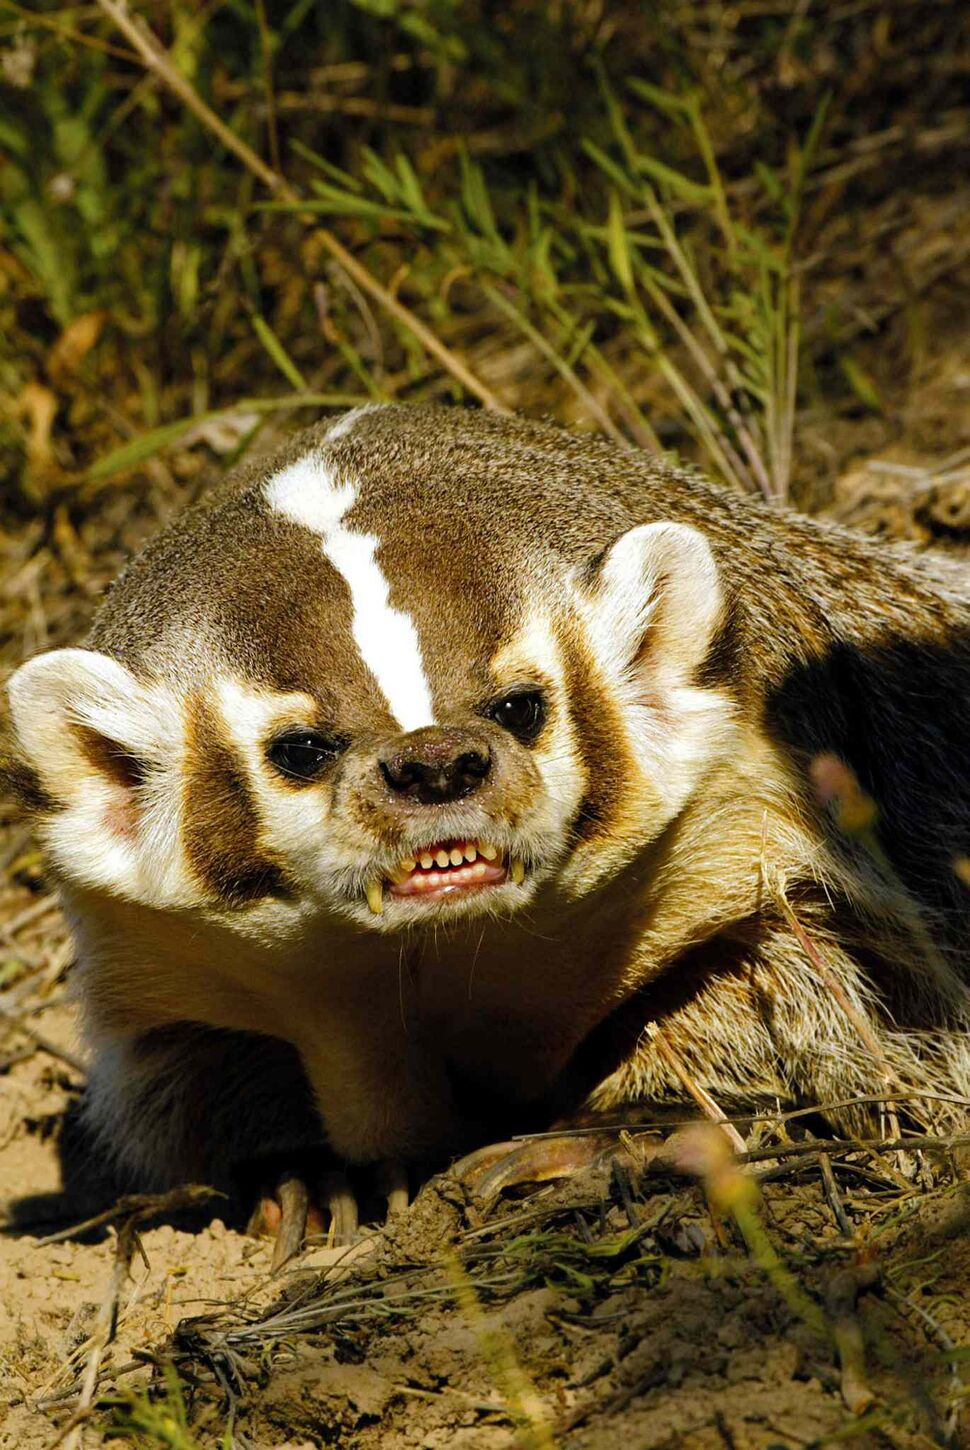 4. All fur bearing animals of the family Mustelidae, including, but not limited to, weasel, marten, mink, badger (pictured), ermine, skunk, otter, pole cat, wolverine, except the domestic ferret (Putorius furo).  (Associated Press)